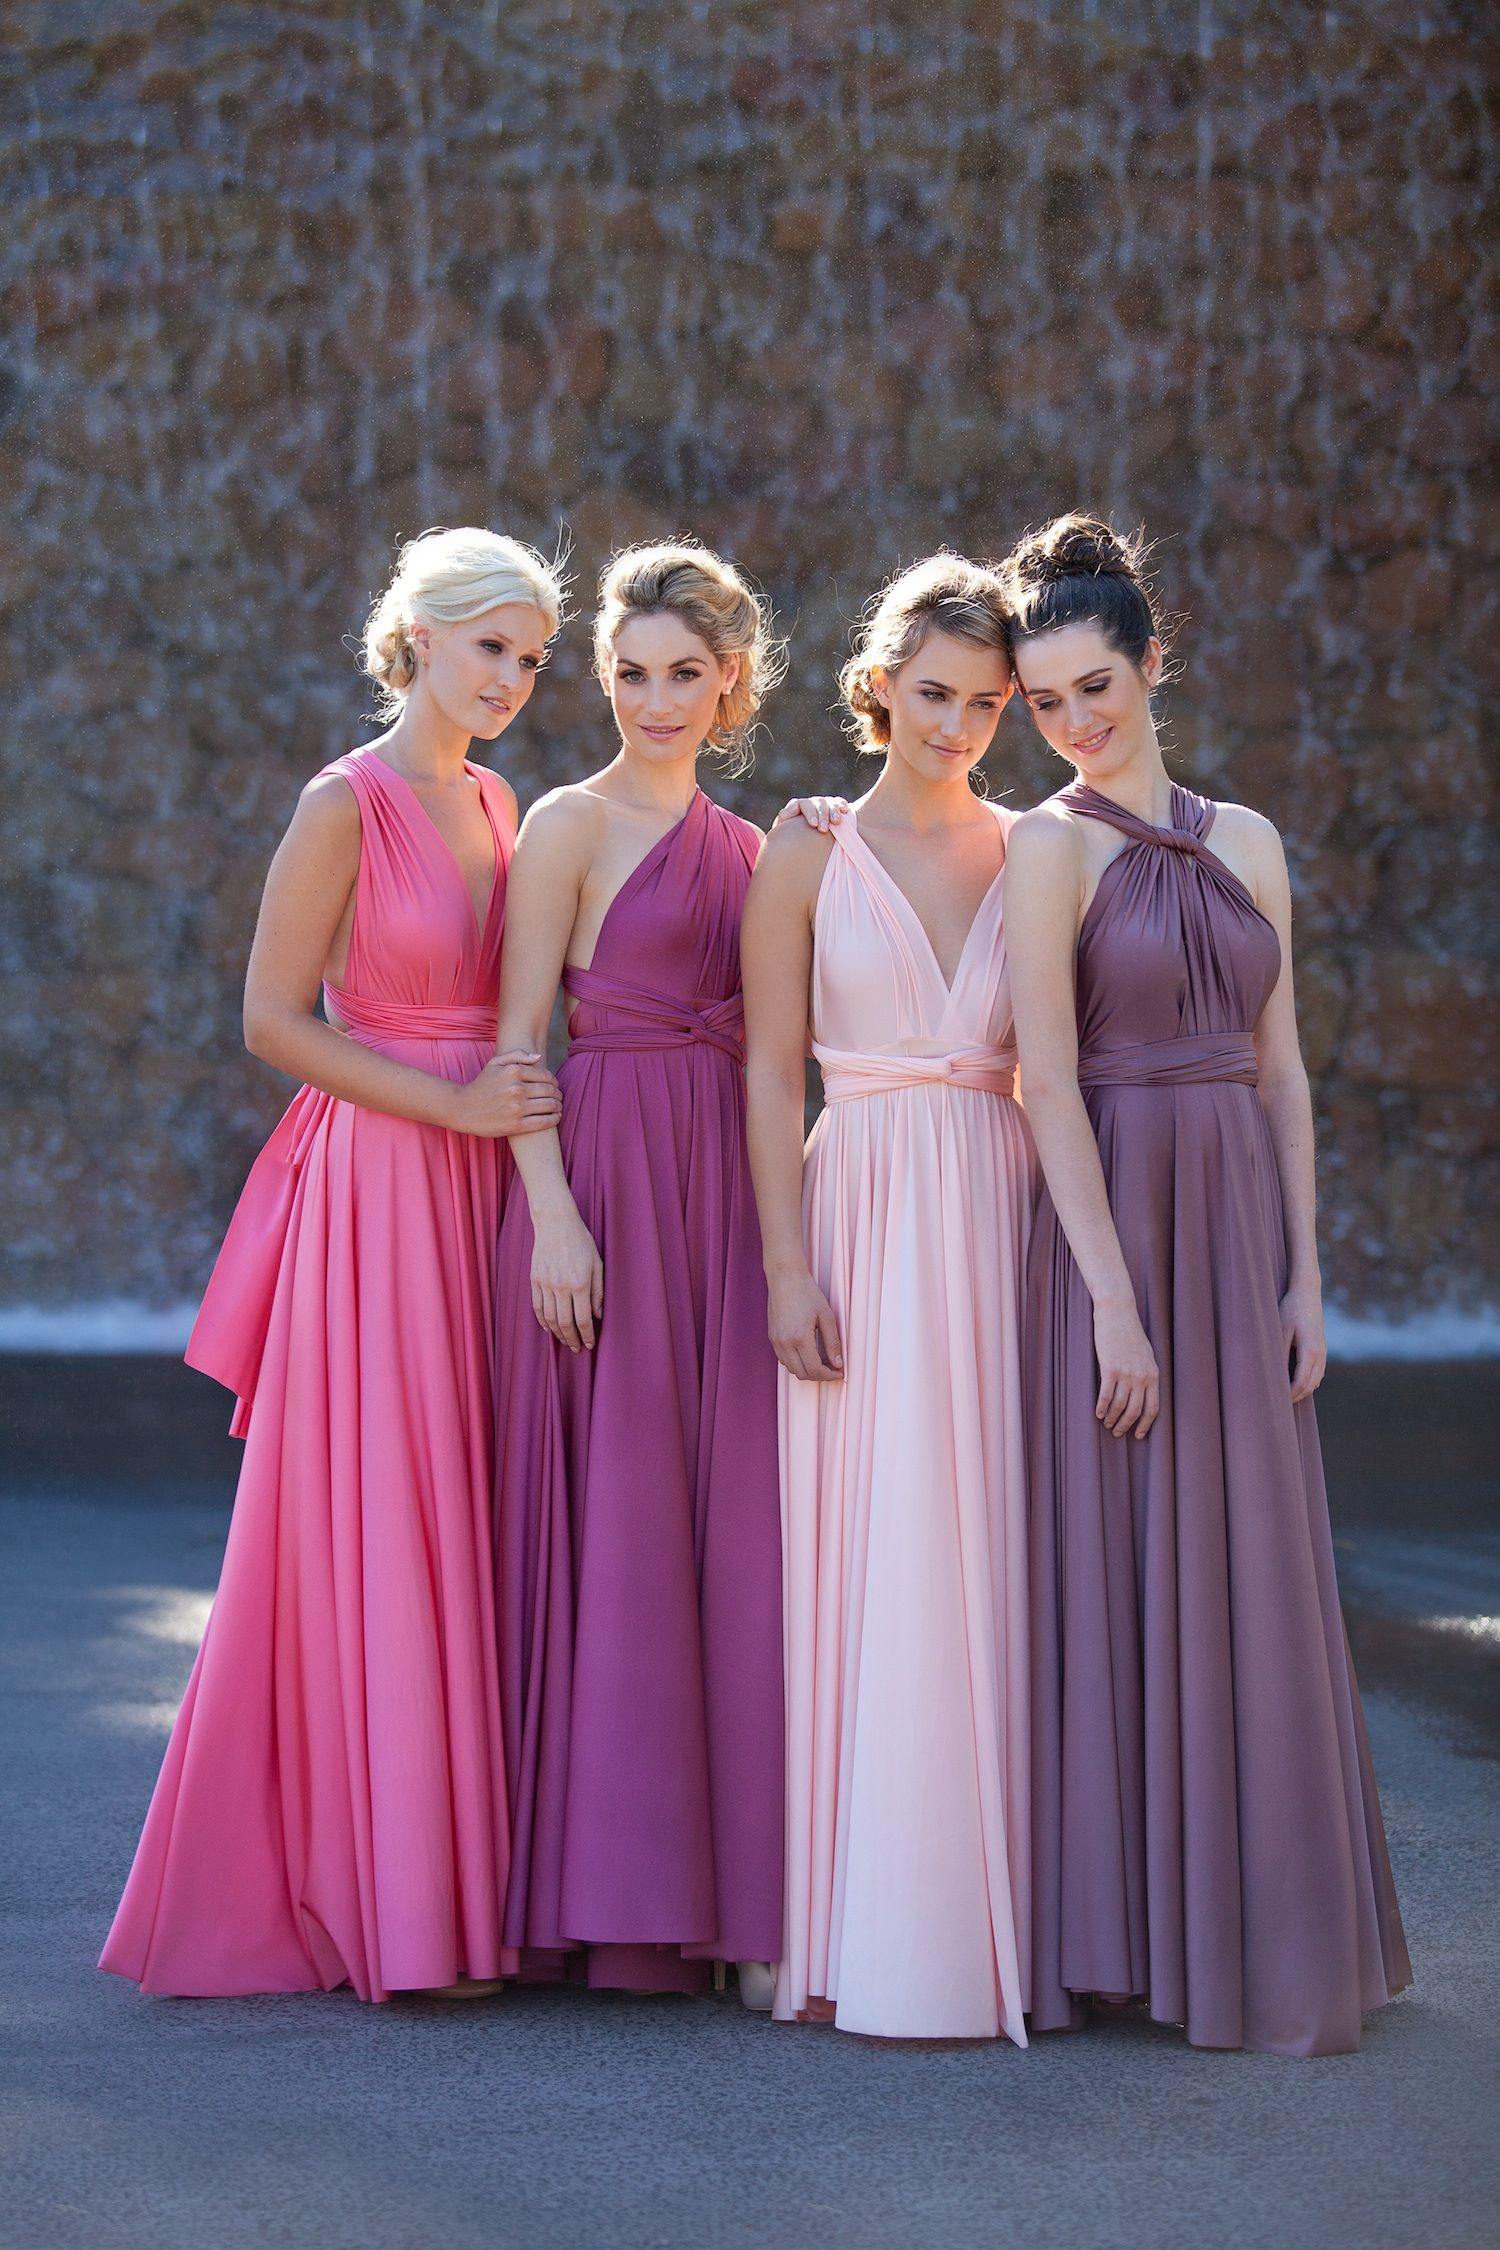 Goddess style bridesmaid dresses can be worn multiple ways goddess style bridesmaid dresses can be worn multiple ways ombrellifo Choice Image